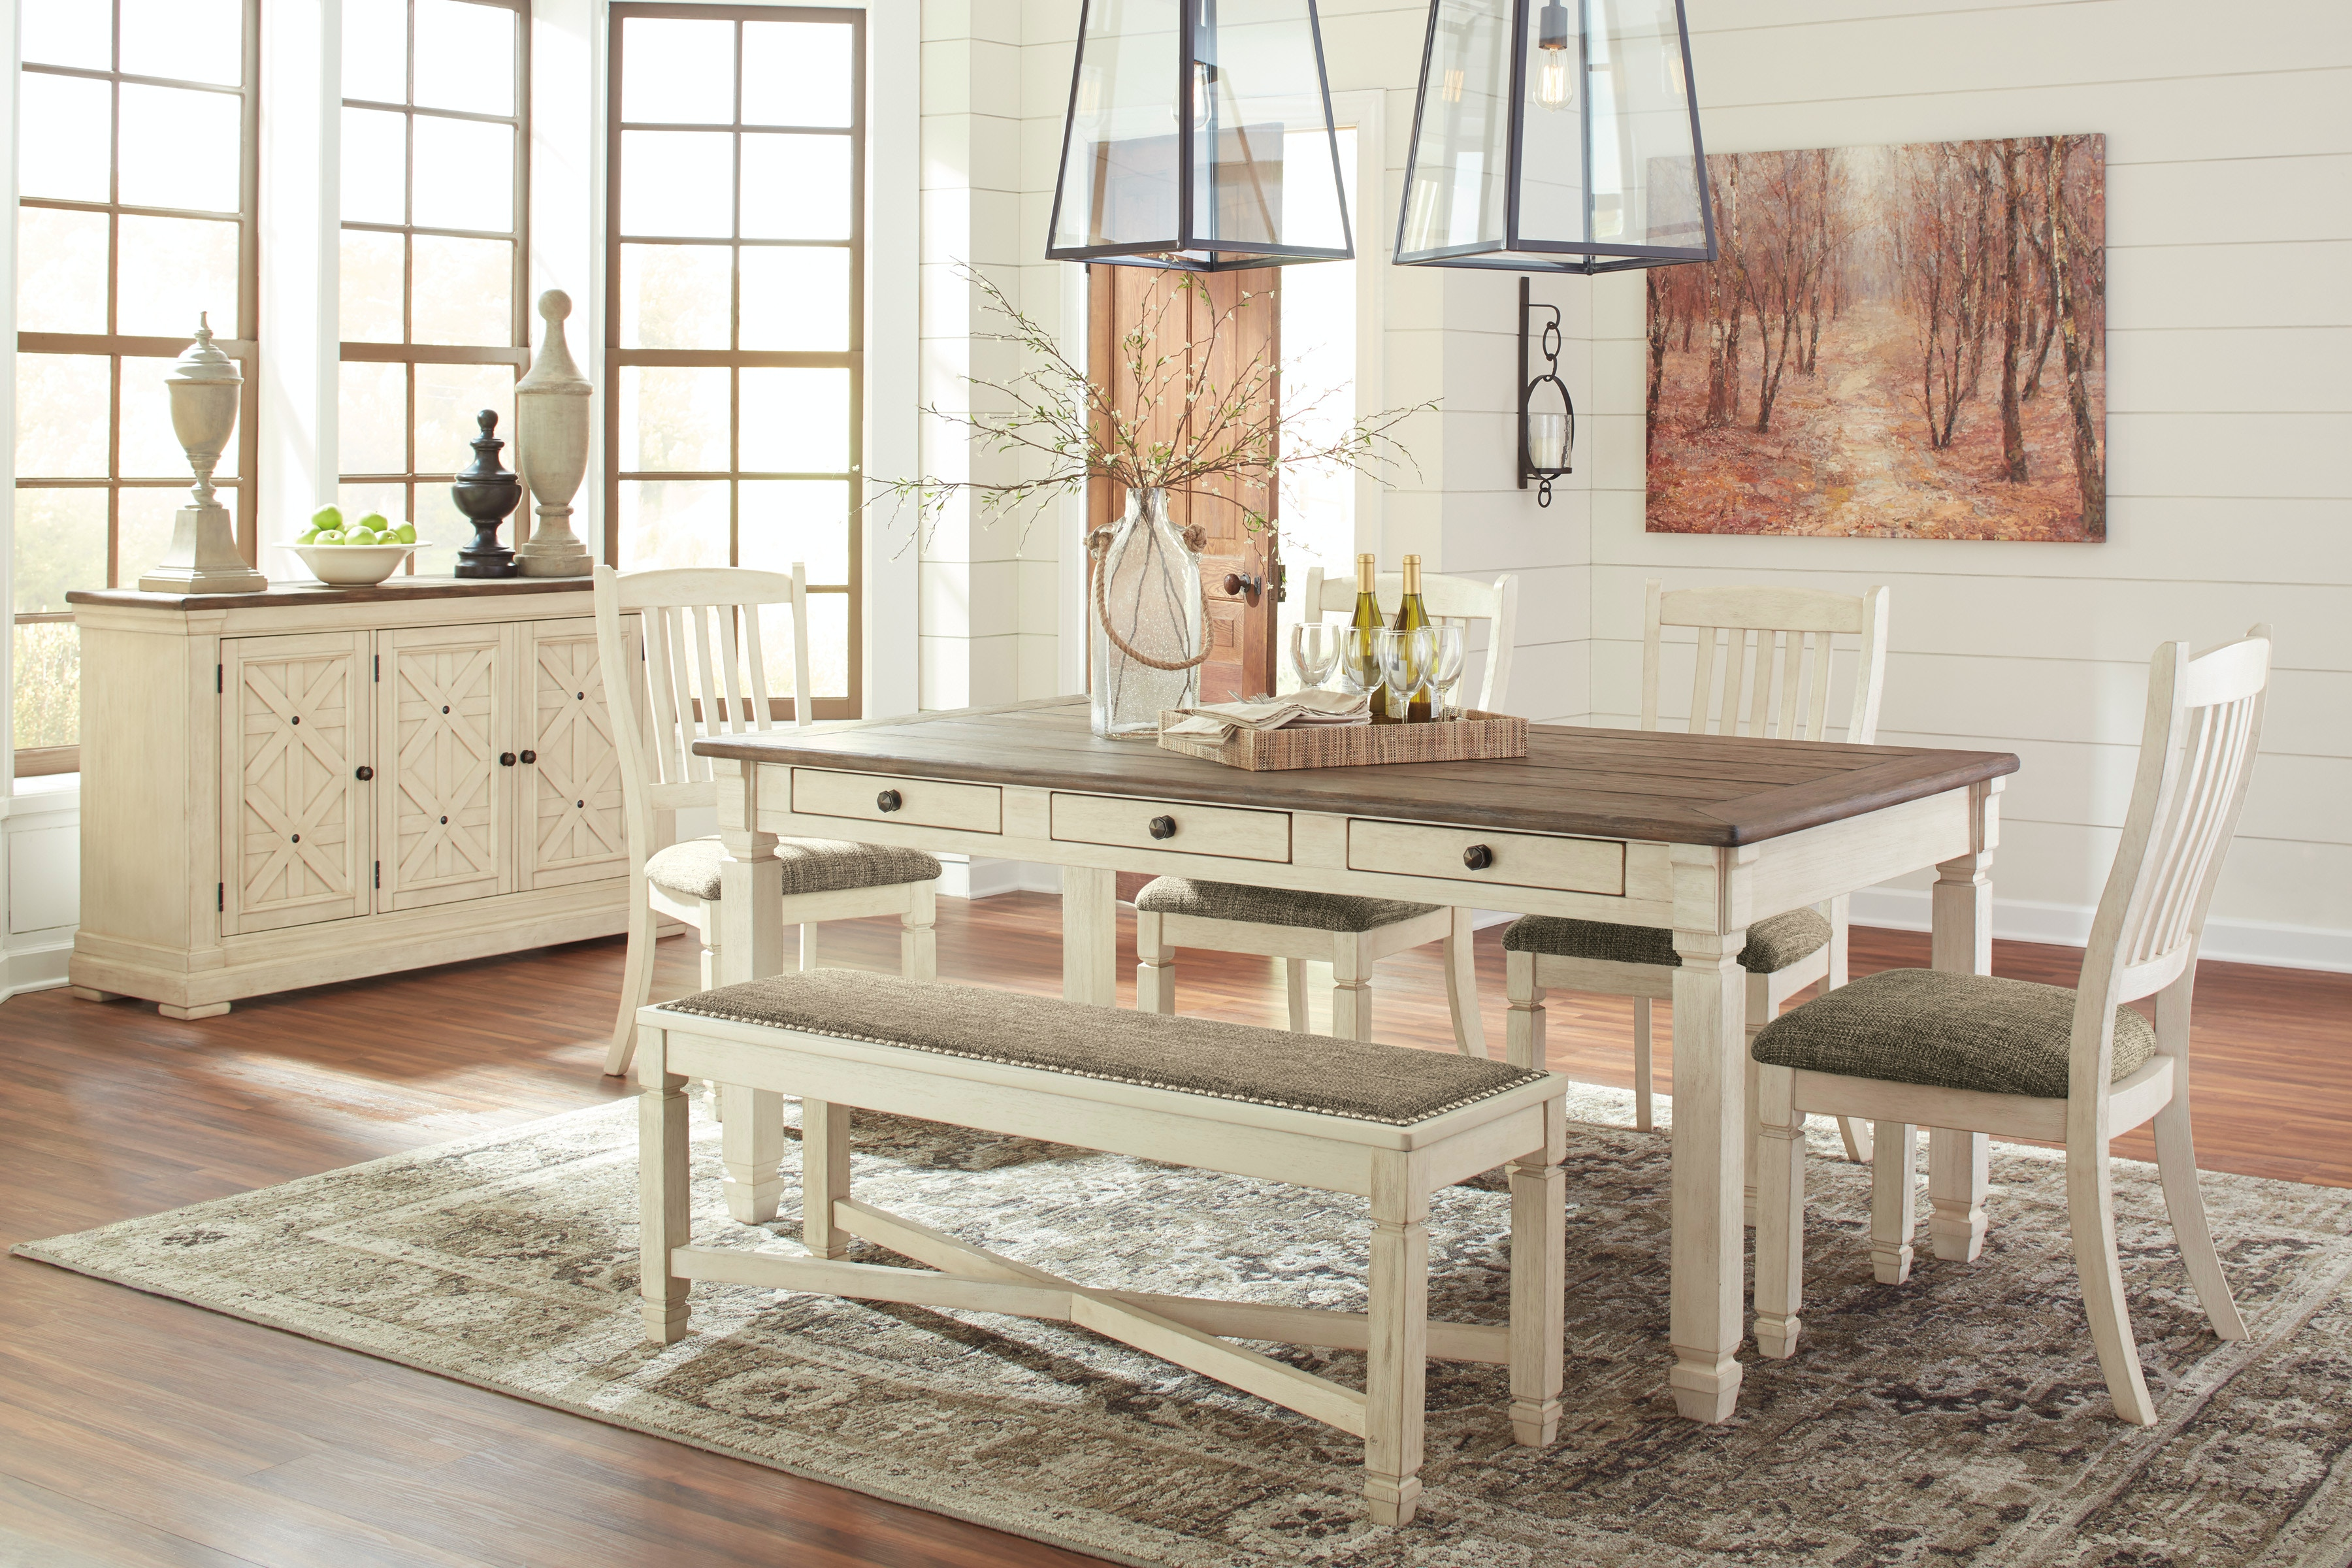 Signature Design By Ashley Bolanburg Table, 4 Chairs U0026 Bench D647 25/01